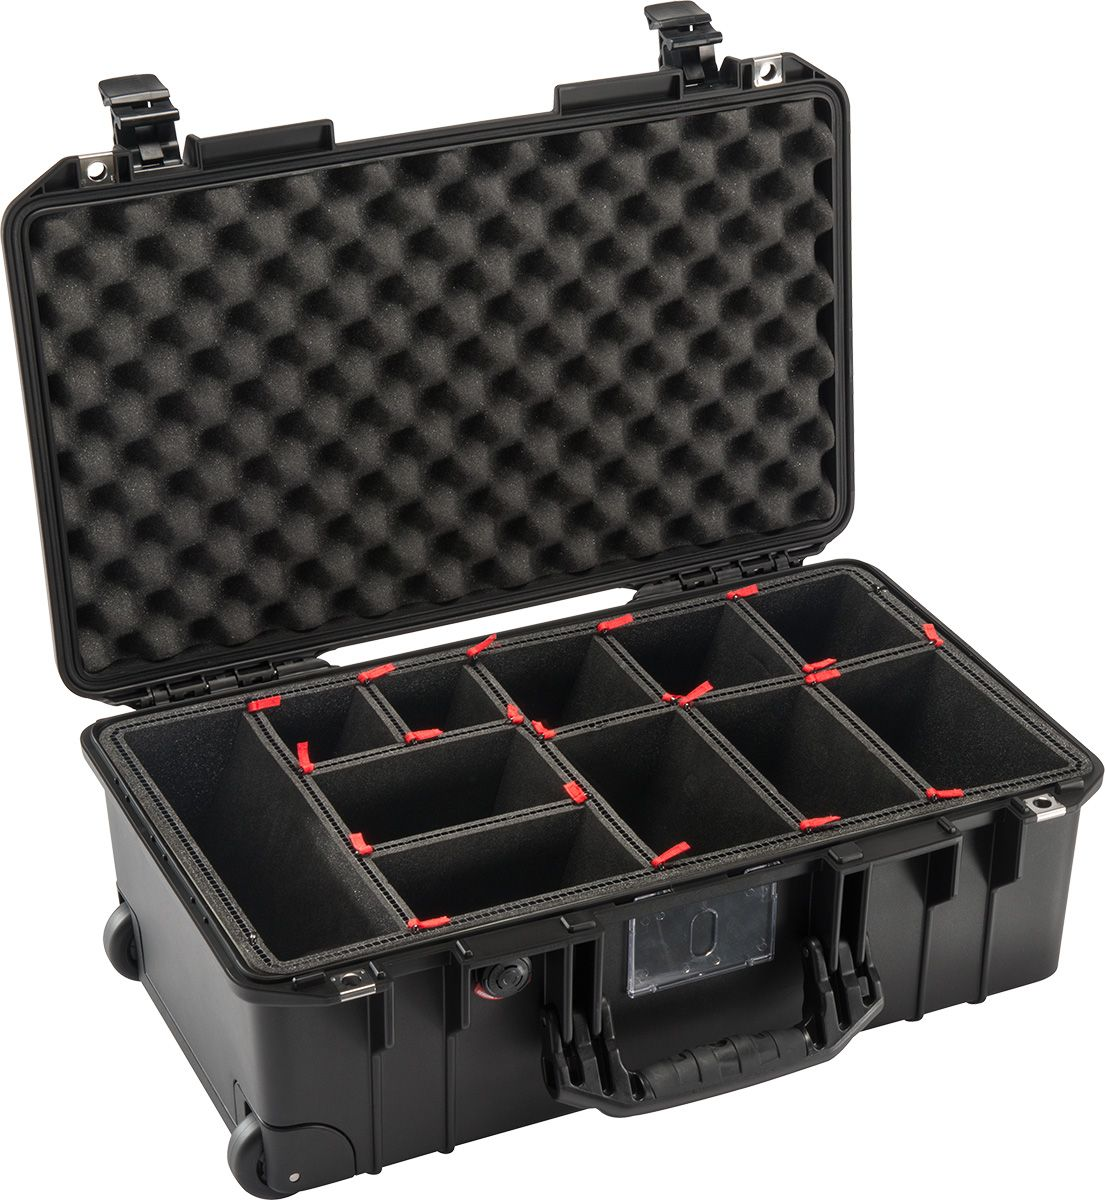 1535 Protector Medium Case Air Case Pelican With Images Pelican Case Case Pelican